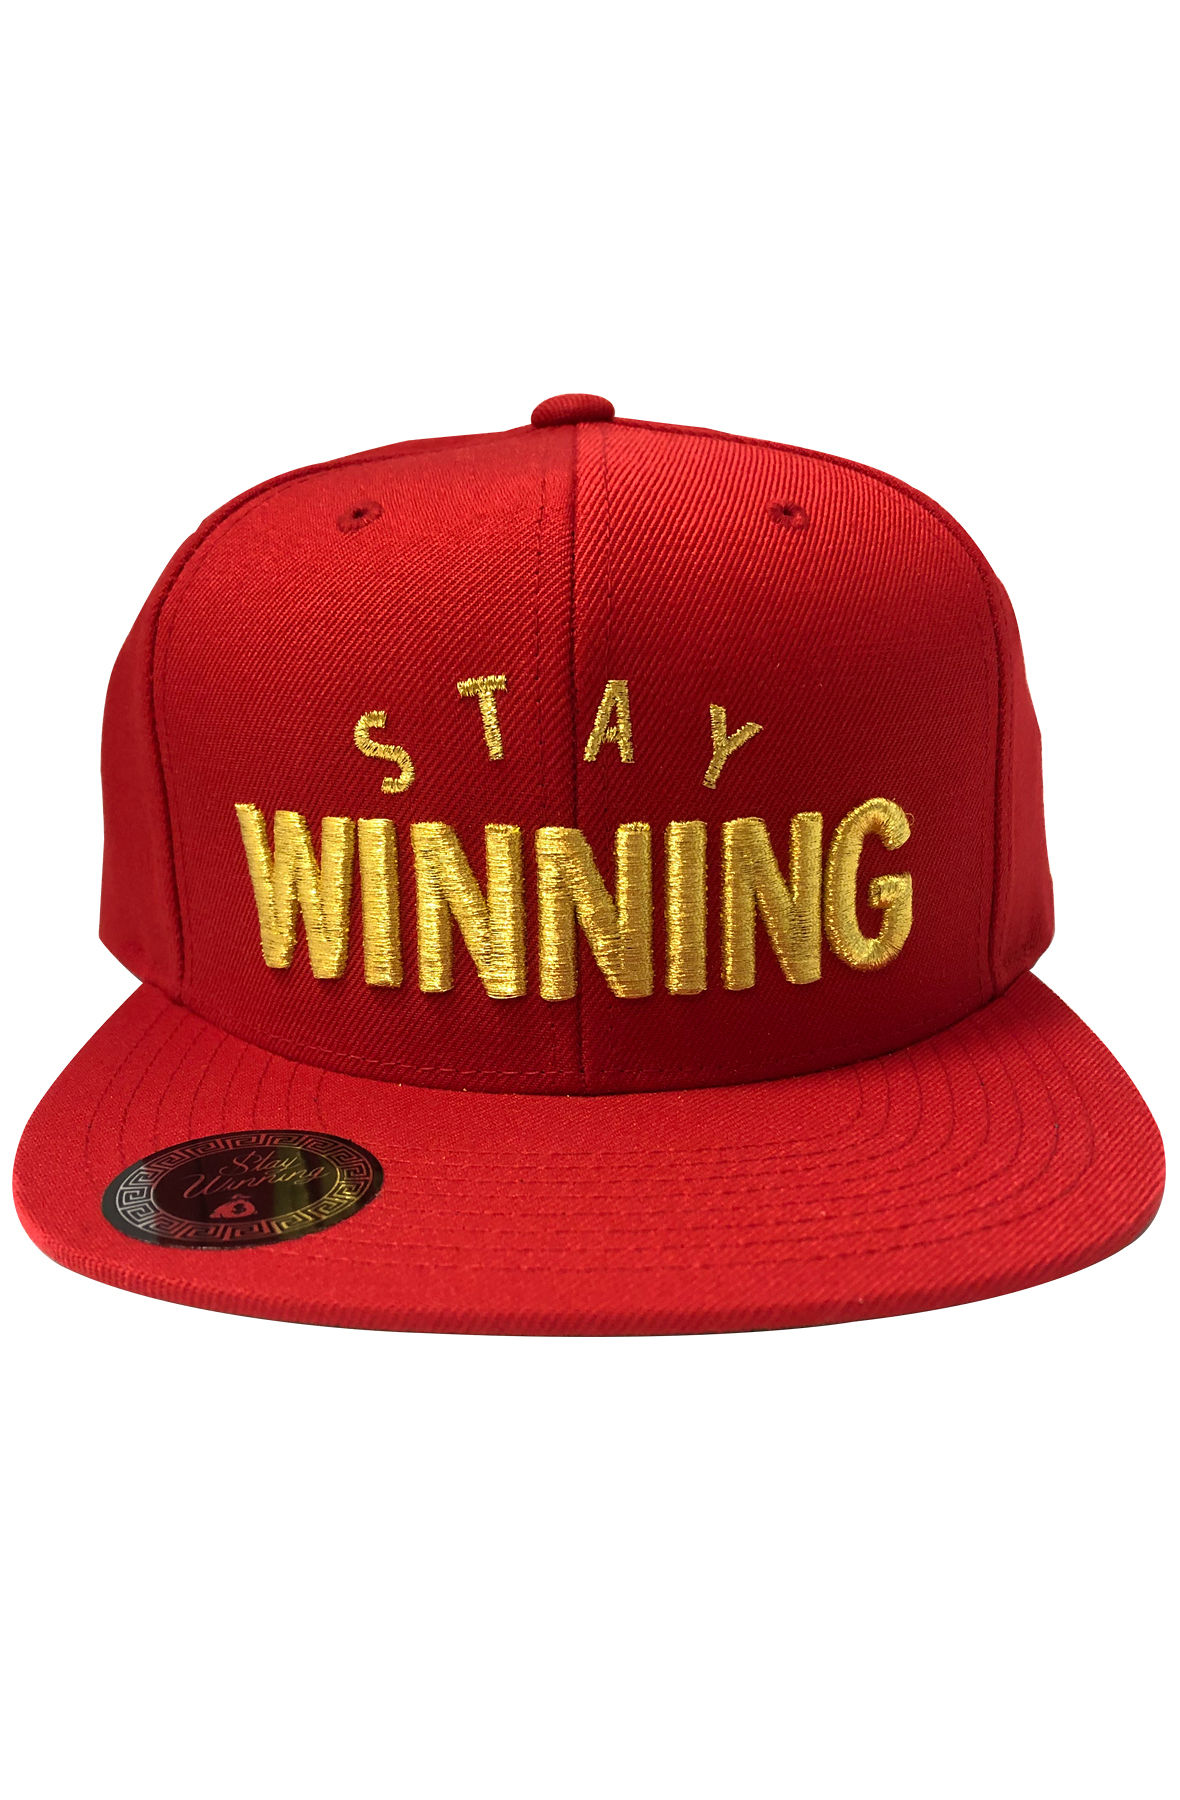 Image of STAY WINNING RED/GOLD SNAP BACK